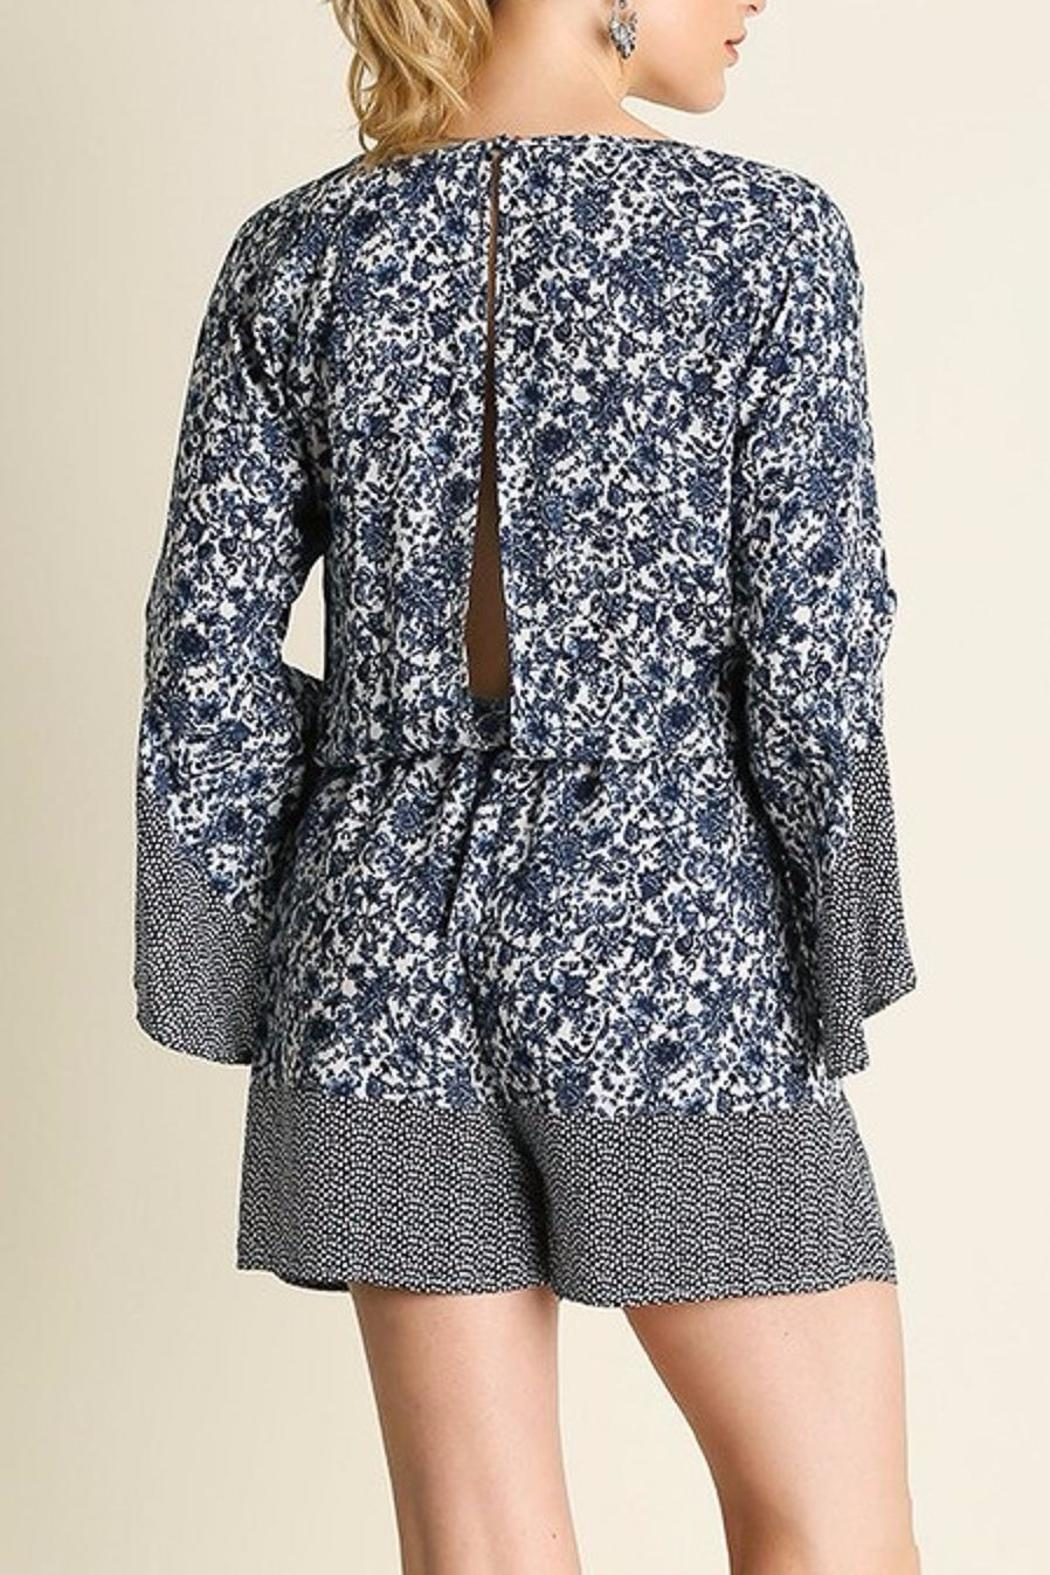 People Outfitter Adeline Romper - Side Cropped Image